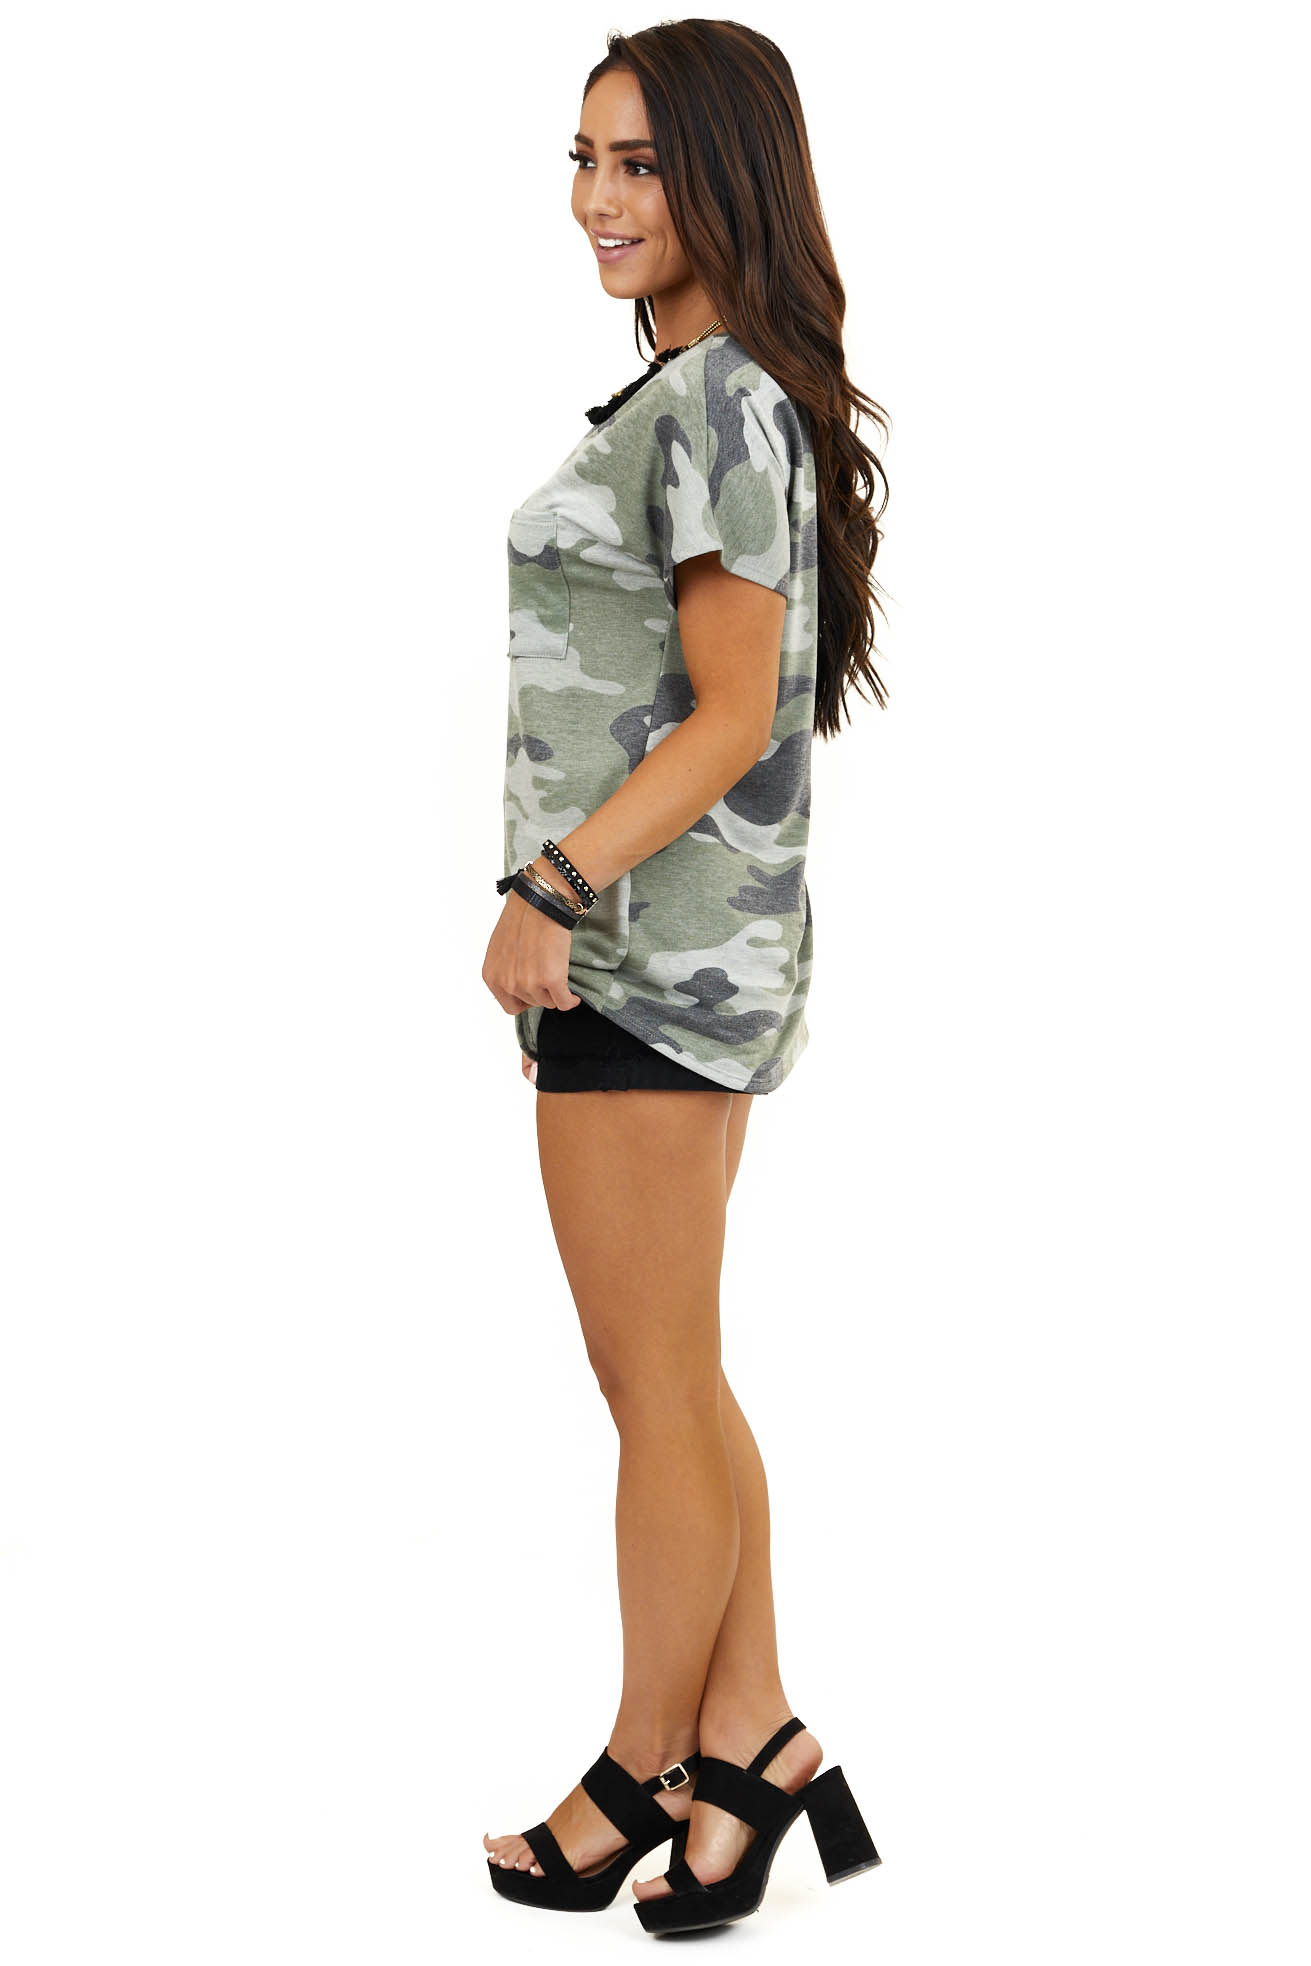 Olive Camo Print Short Sleeve Top with Chest Pocket